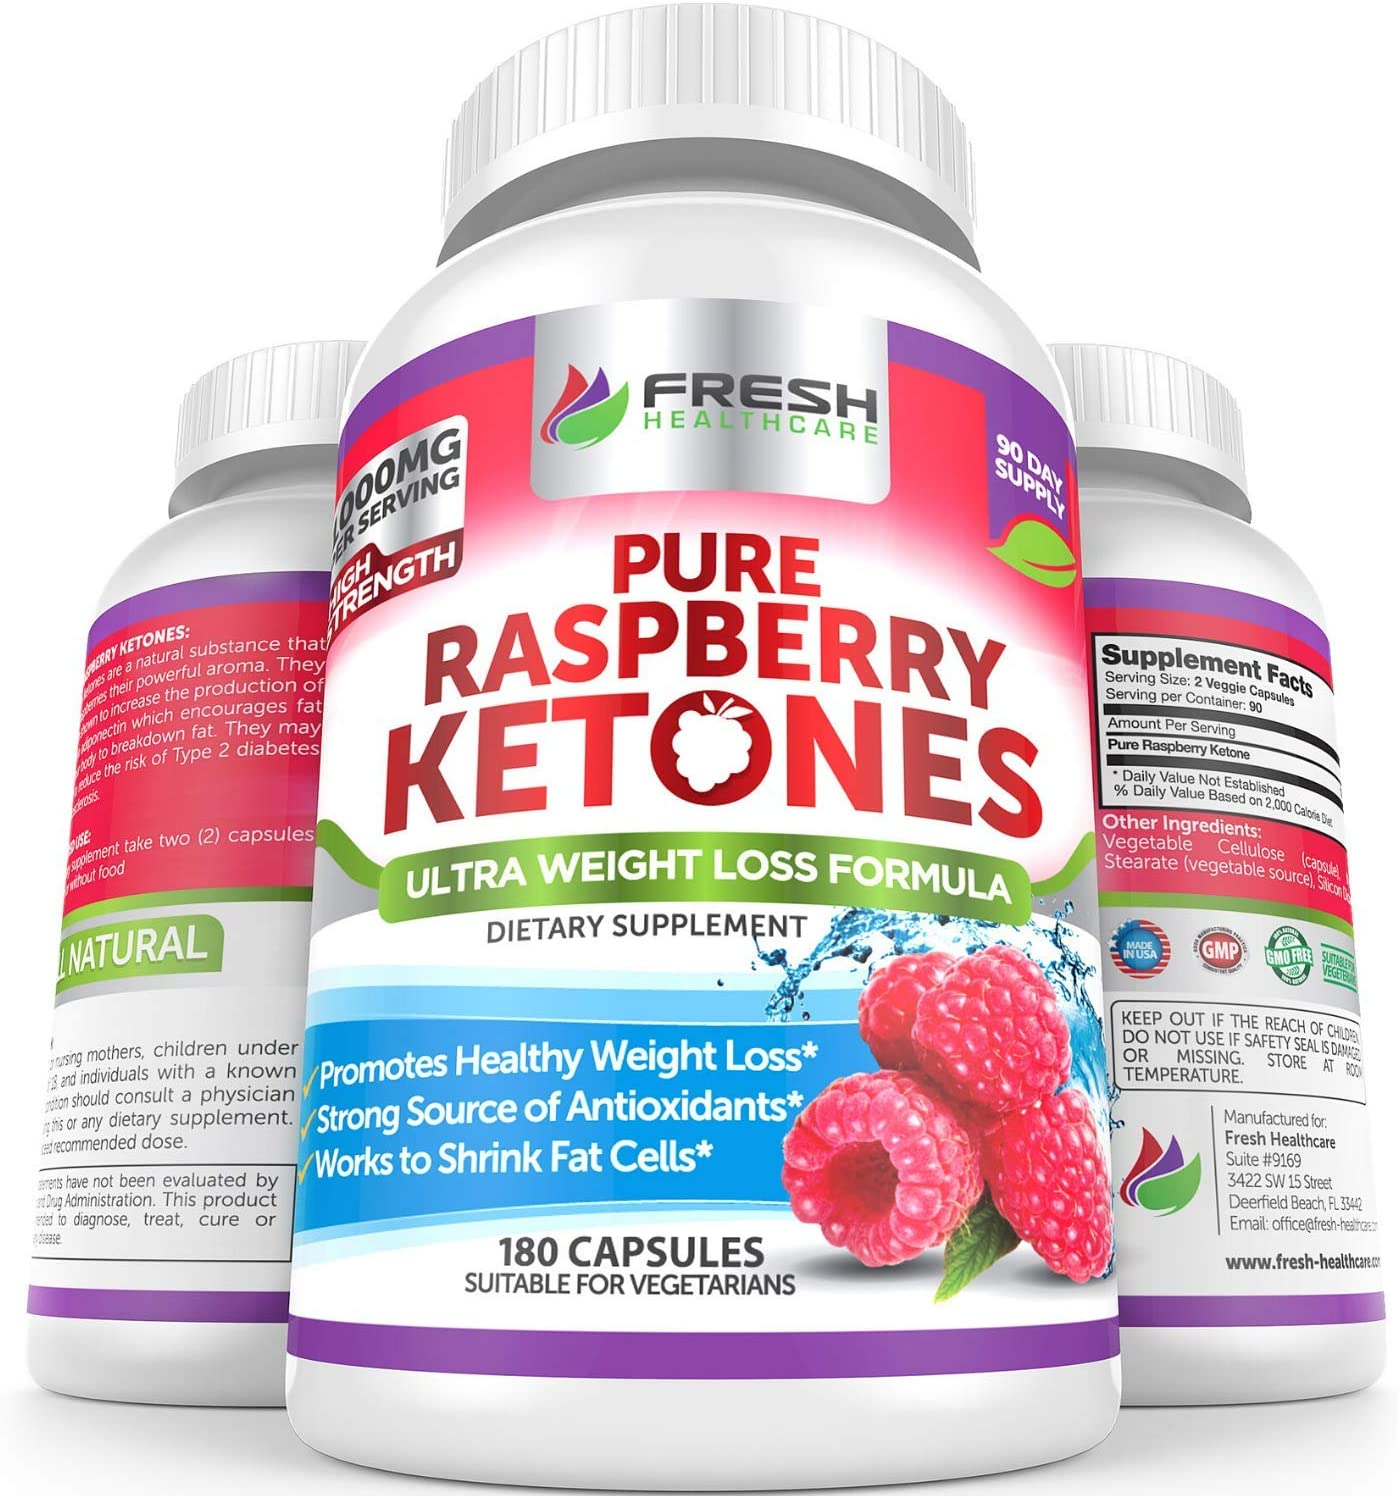 Amazon Com Pure 100 Raspberry Ketones Max 1000mg Per Serving 3 Month Supply Powerful Weight Loss Supplement Provides Energy Boost For Weight Loss 180 Capsules By Fresh Healthcare Health Personal Care